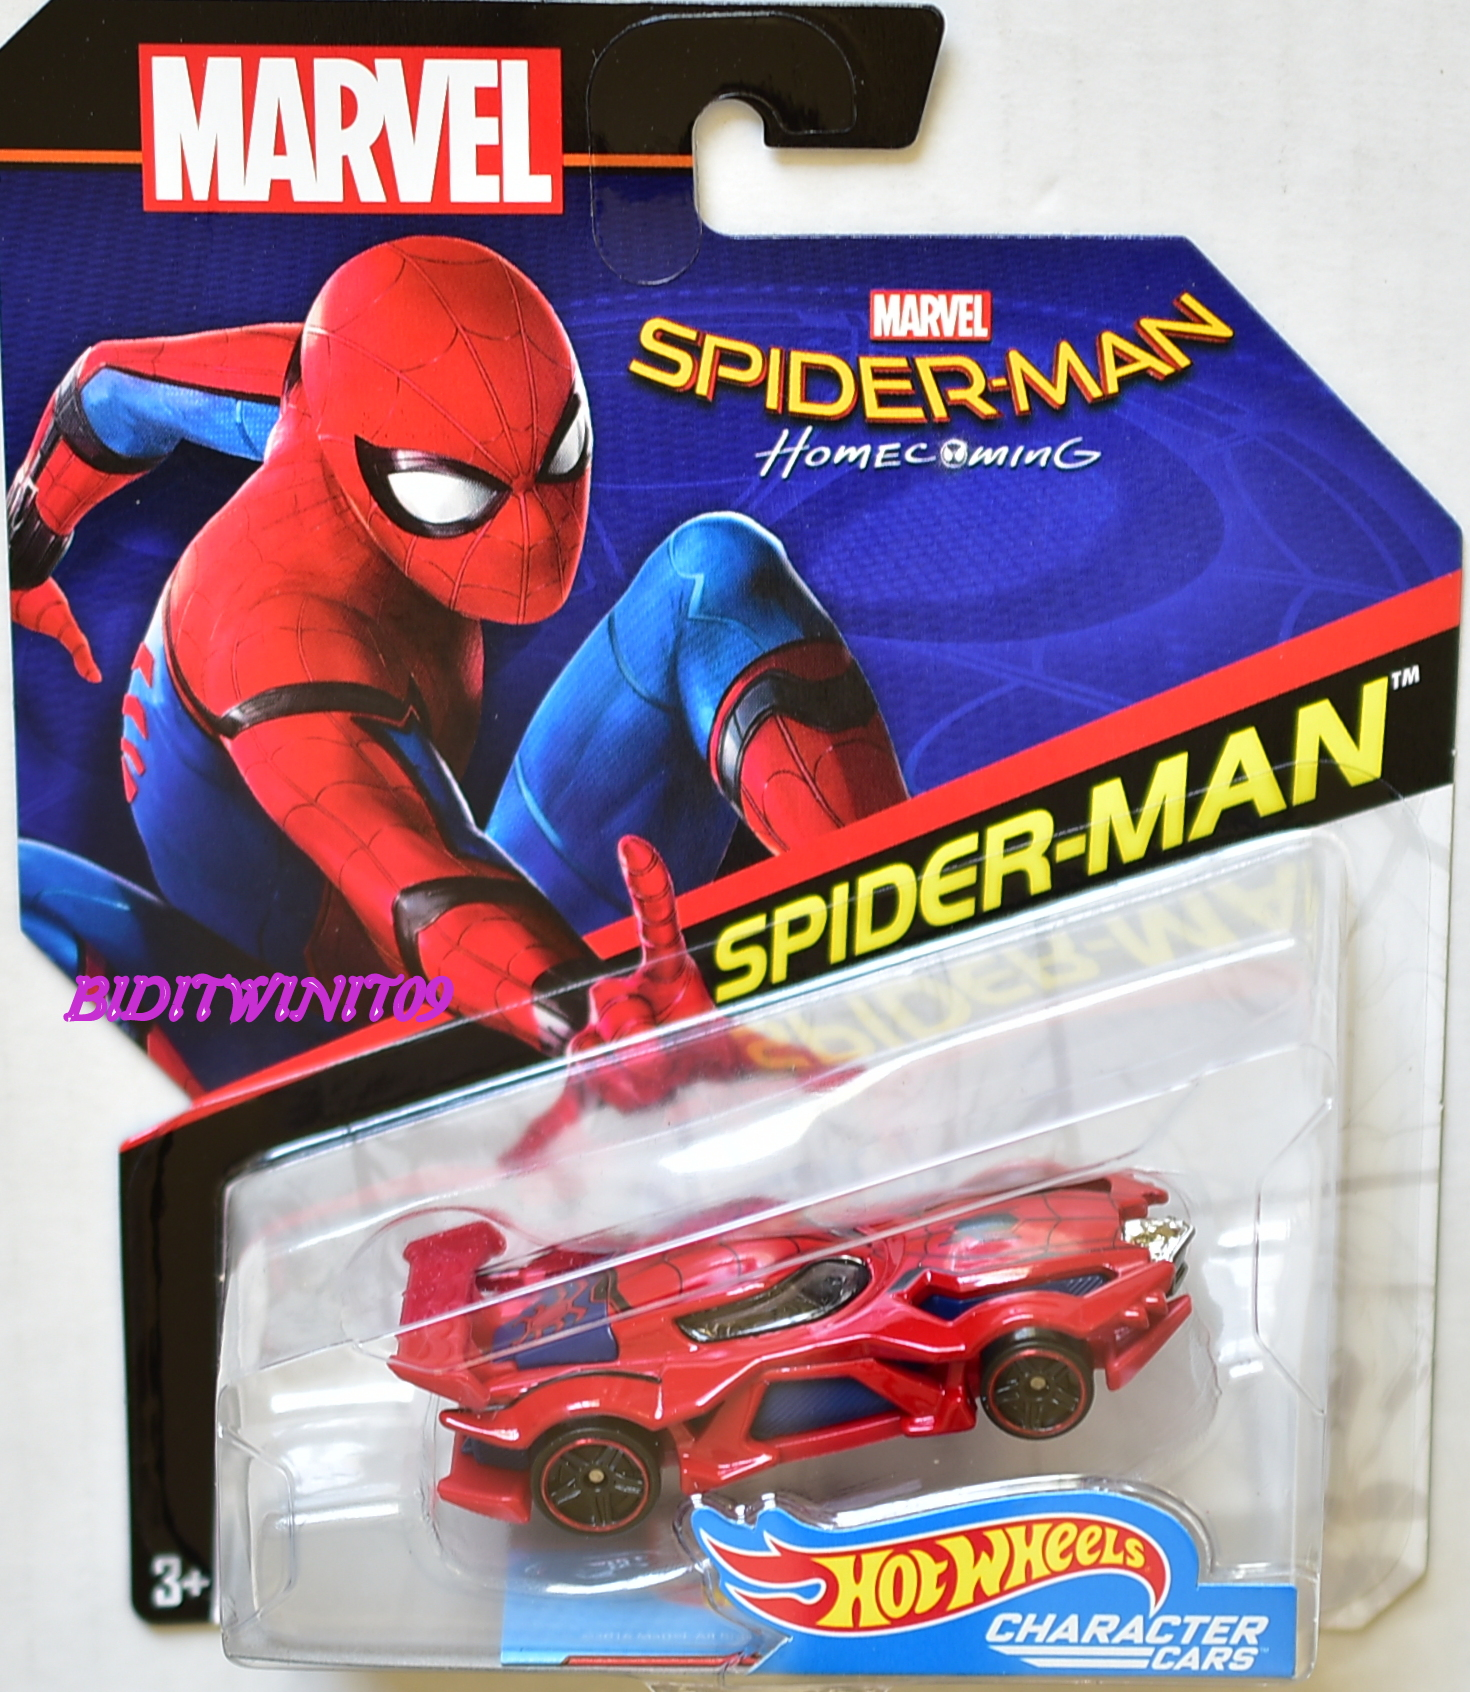 HOT WHEELS 2017 MARVEL CHARACTER CARS HOME COMING SPIDER-MAN